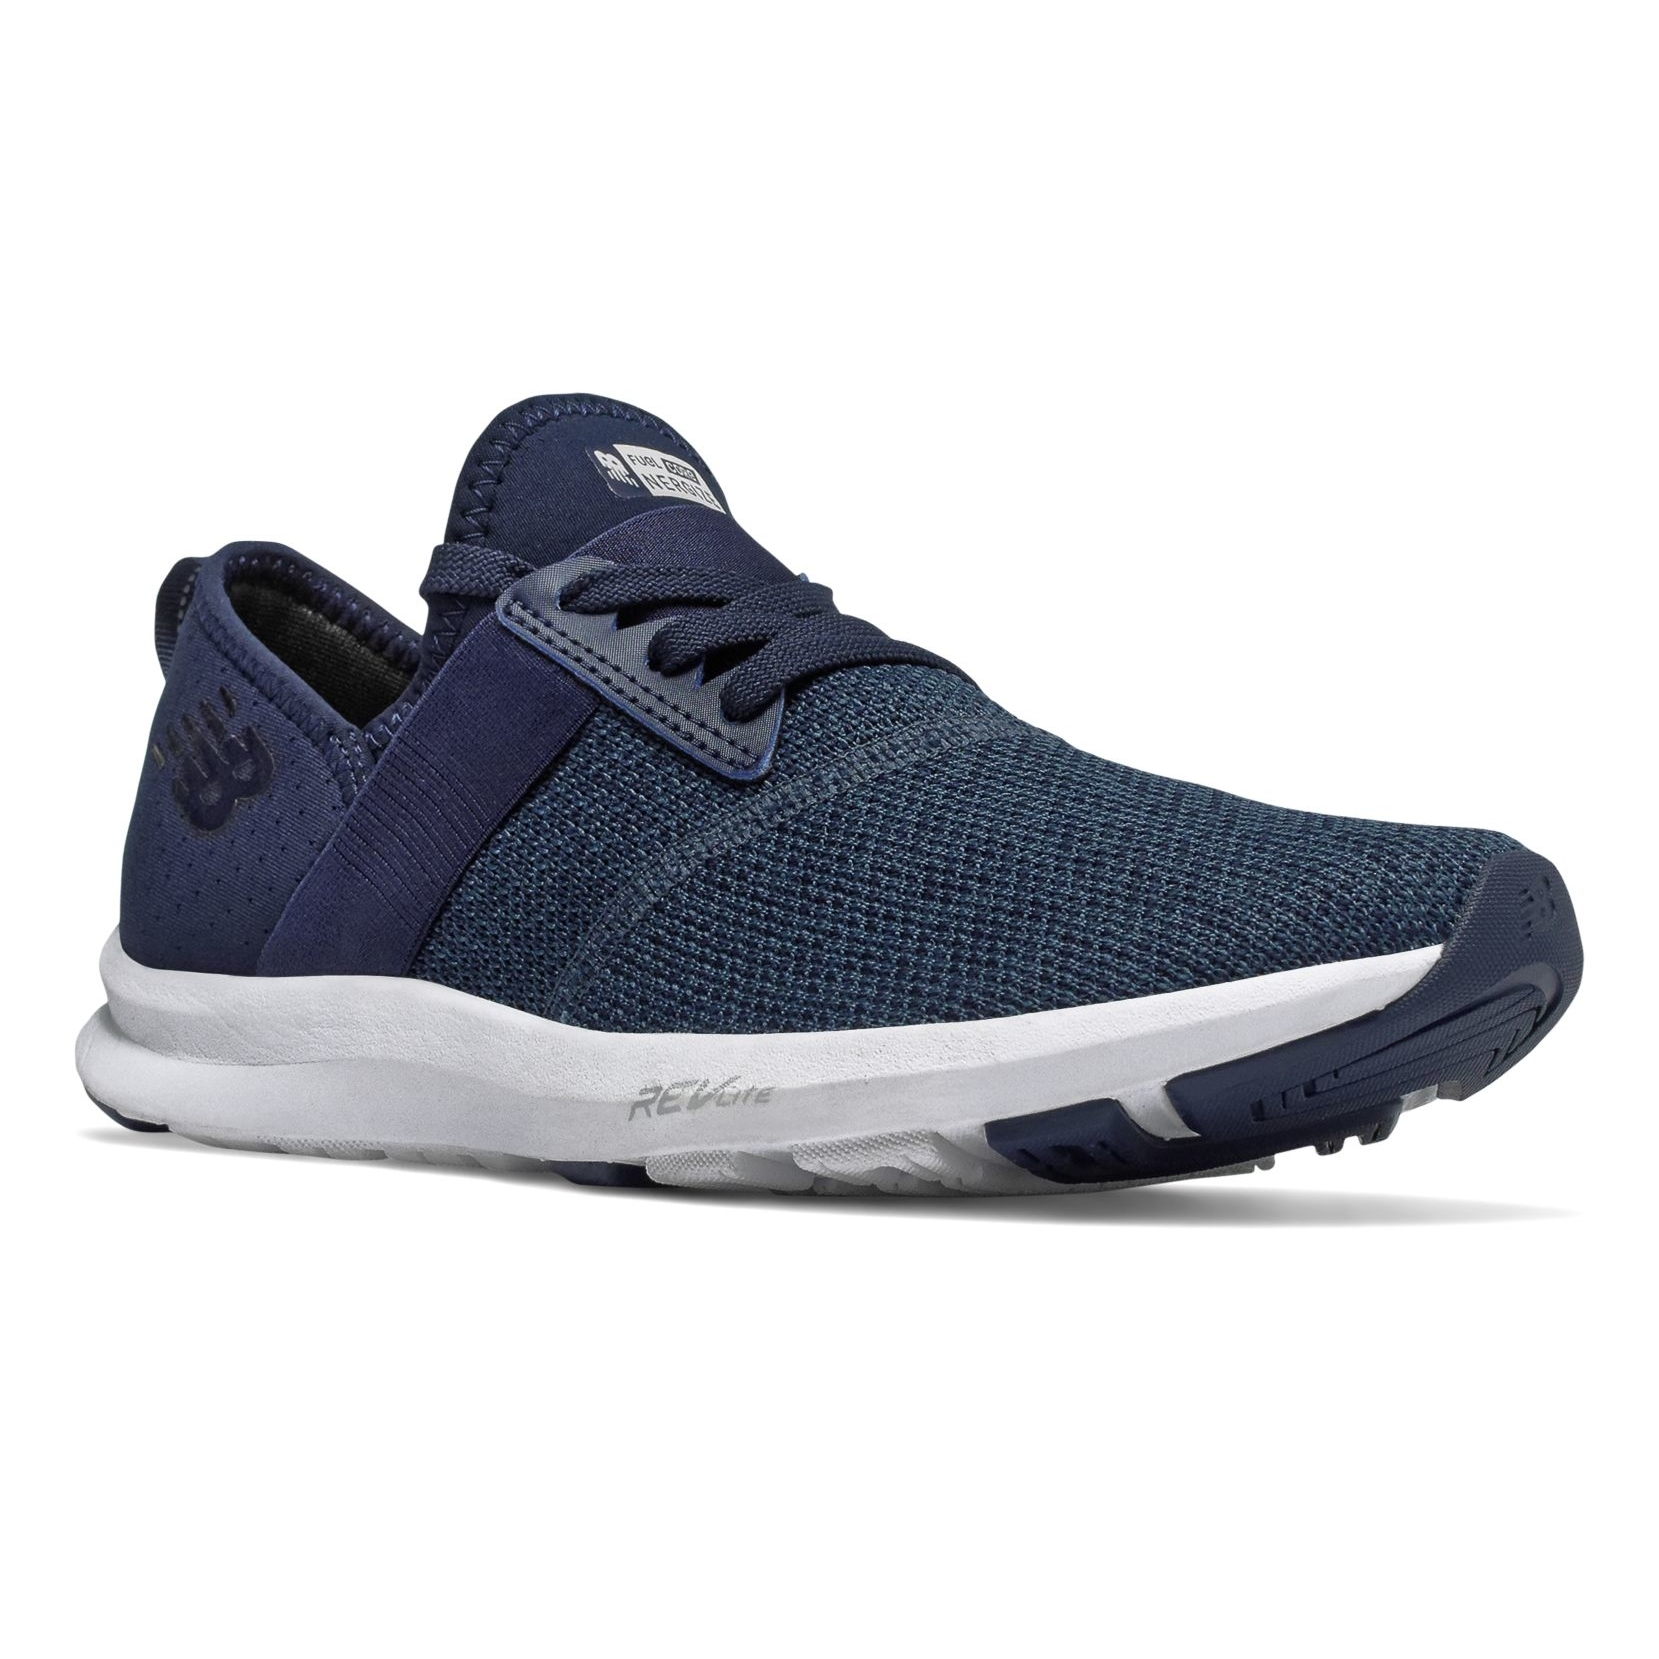 New Balance FuelCore NERGIZE – Pigment With White